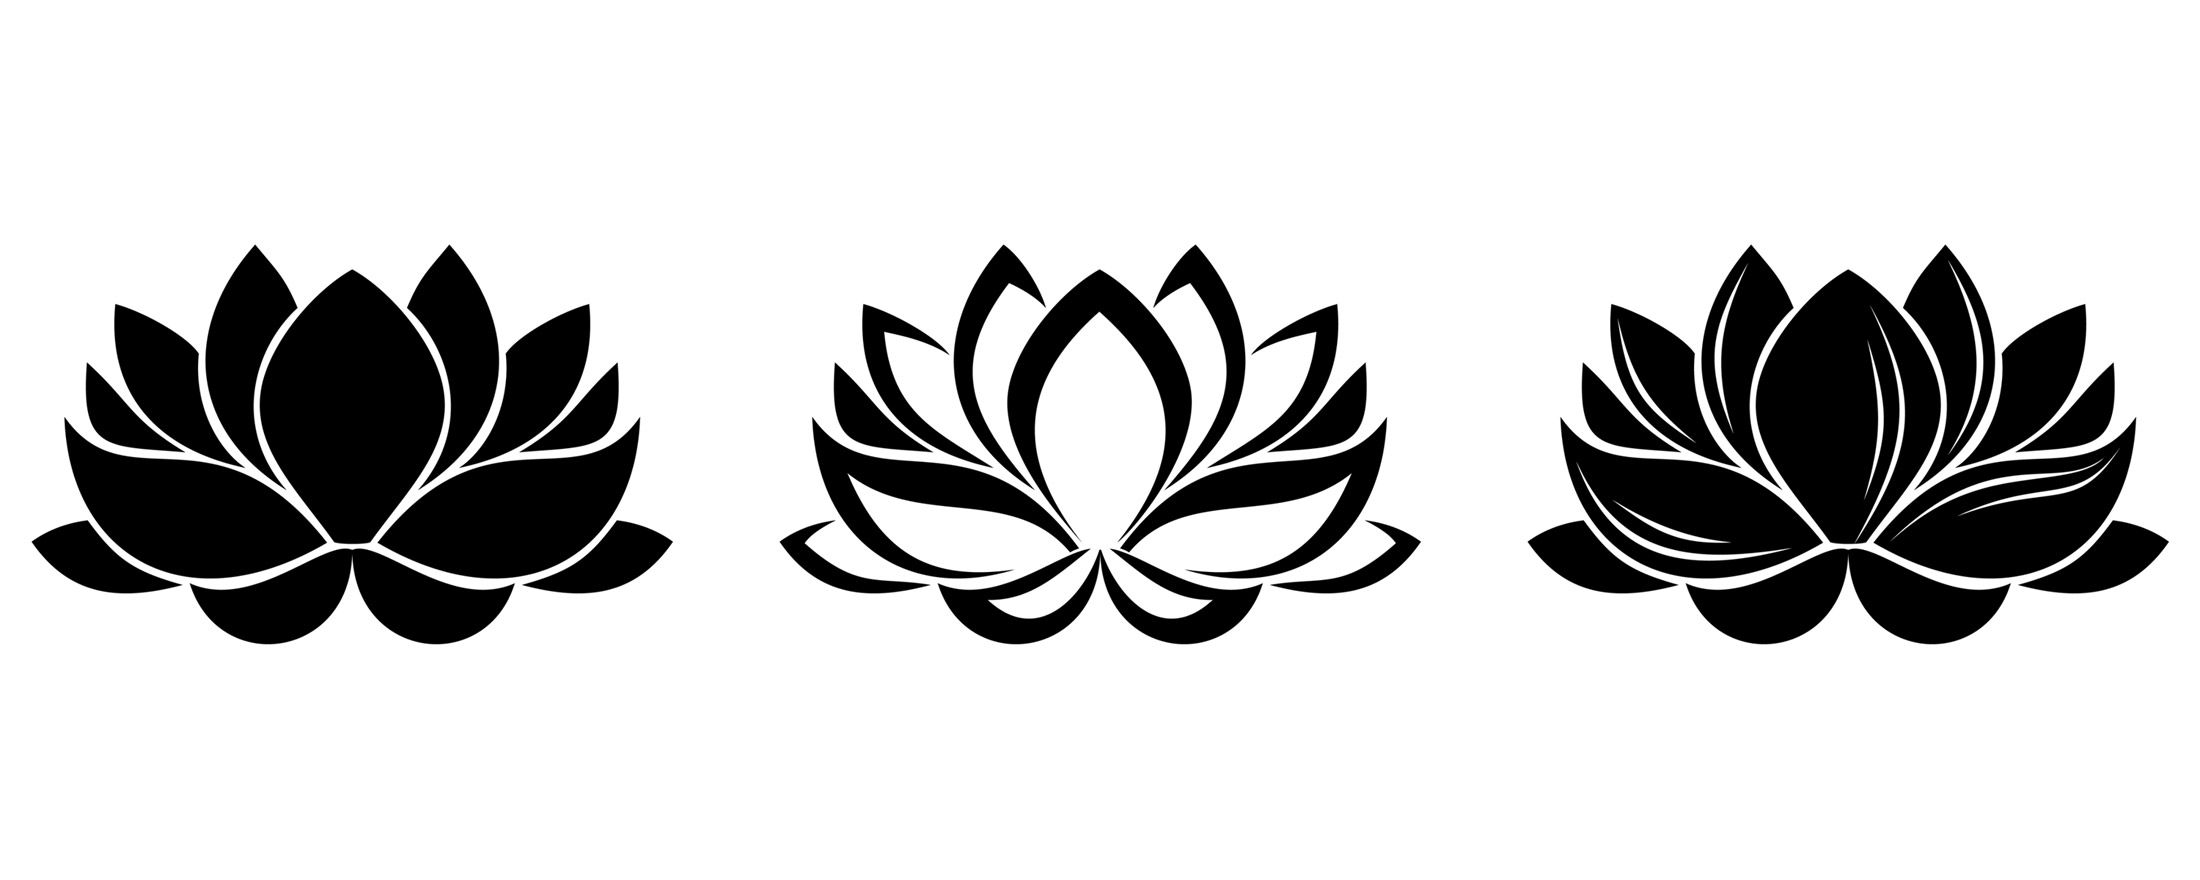 Colouring Picture Of Lotus Clipart Best Henna Tatoo Lotus